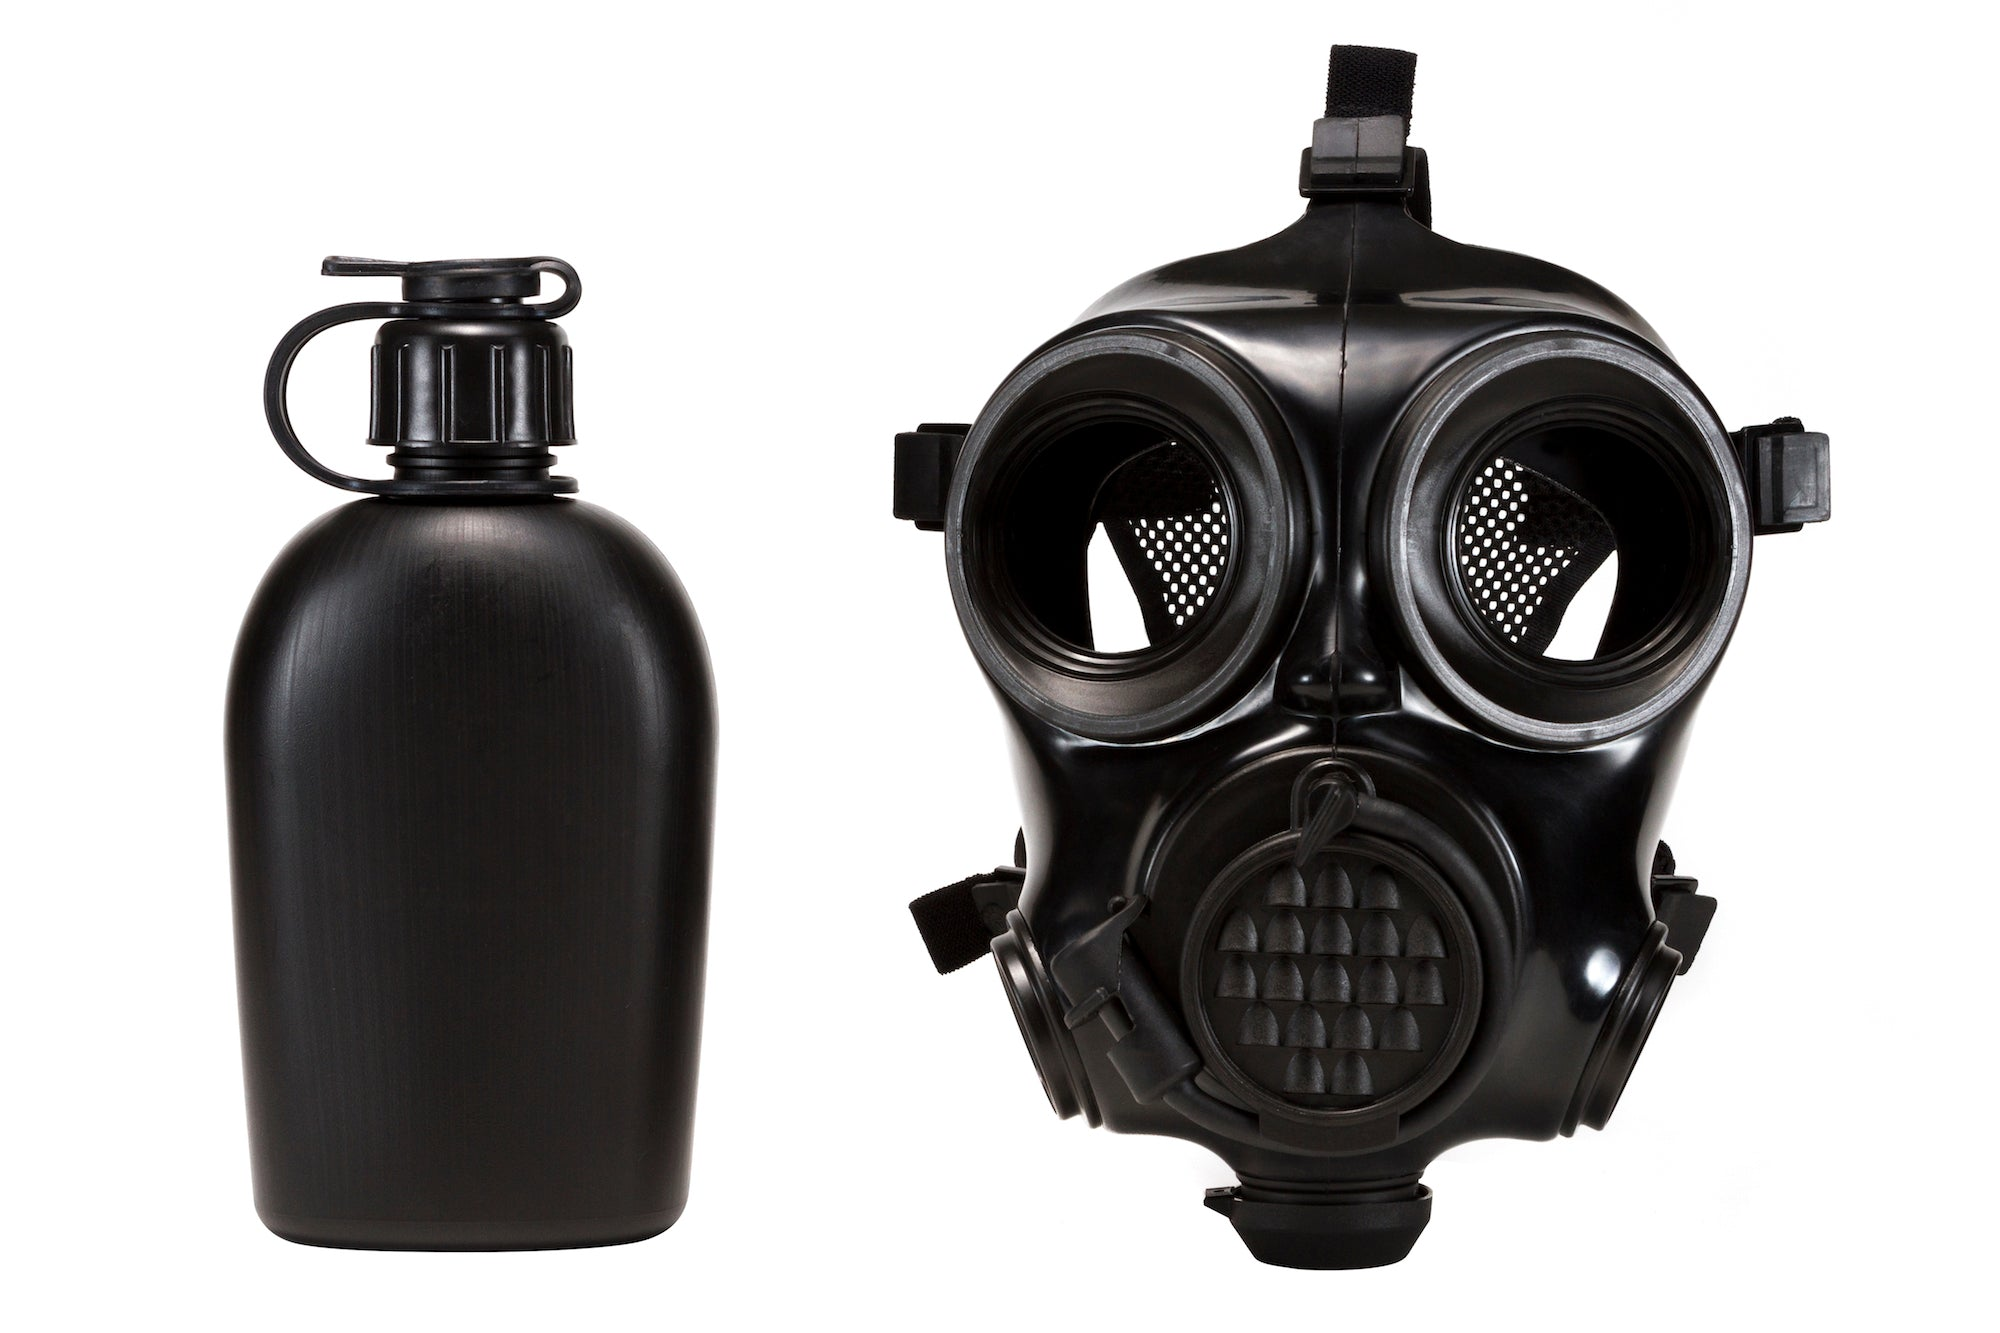 CM-7M Military Gas Mask with a canteen